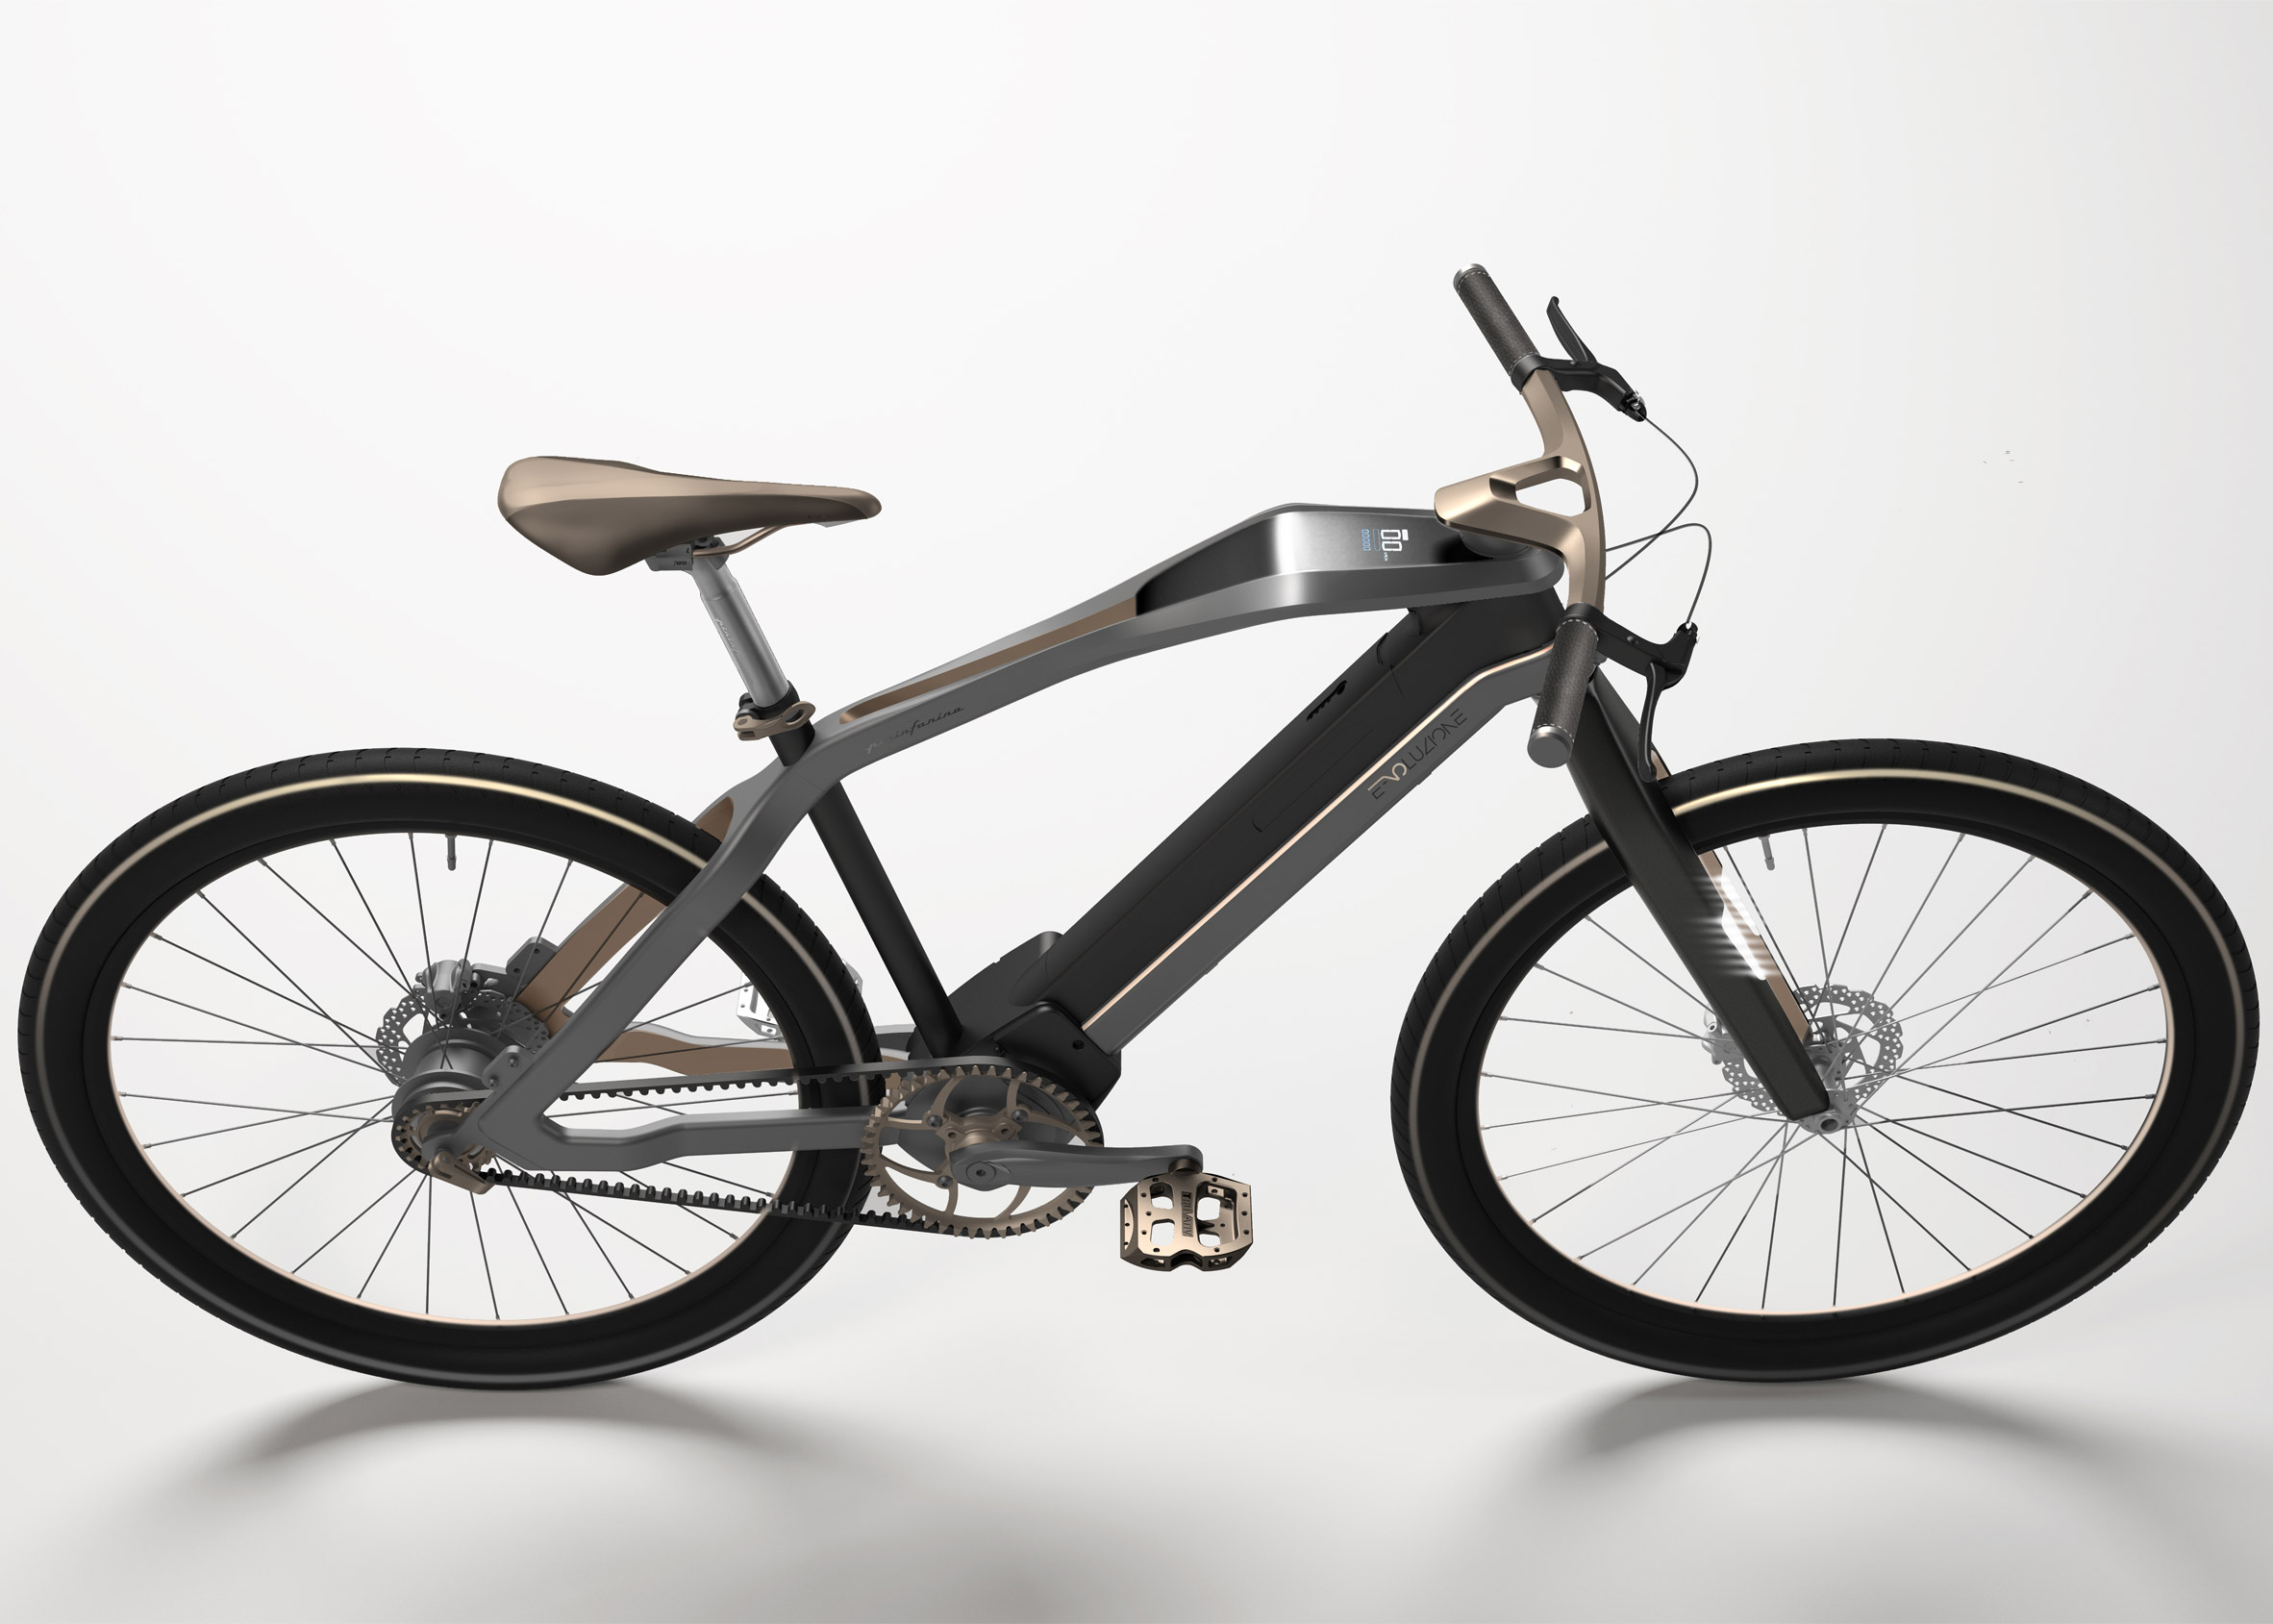 Pininfarina electric bike at Eurobike